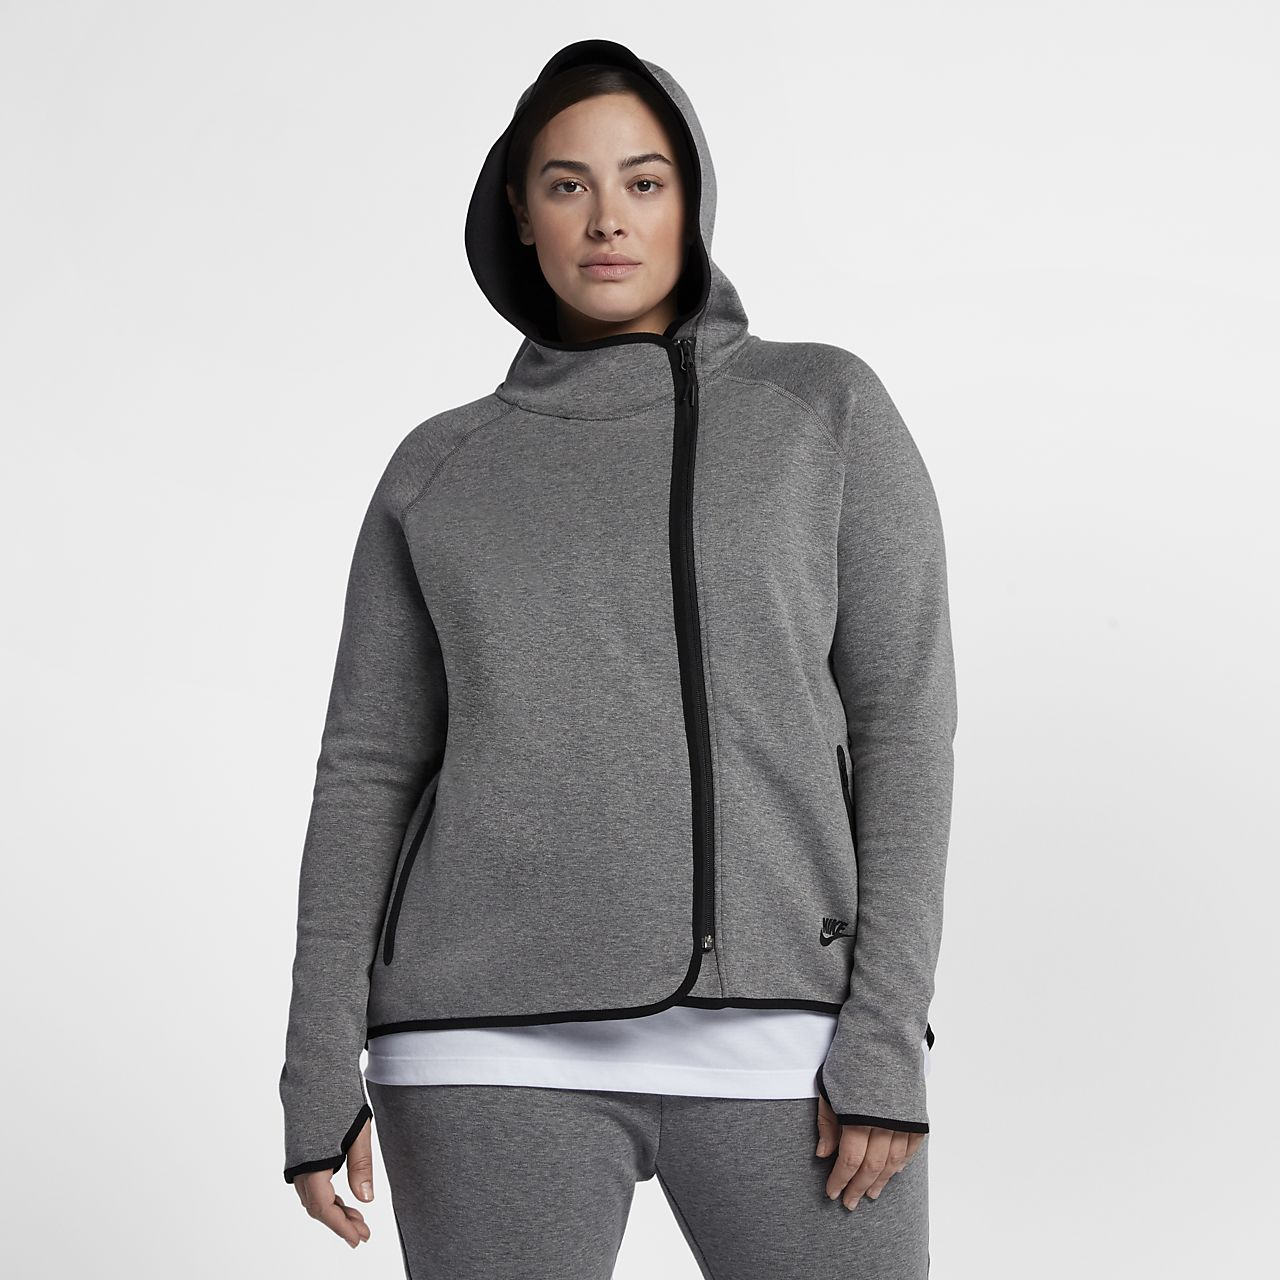 13c1d85843dbc Nike Sportswear Tech Fleece (Plus Size) Women s Full-Zip Cape. Nike.com